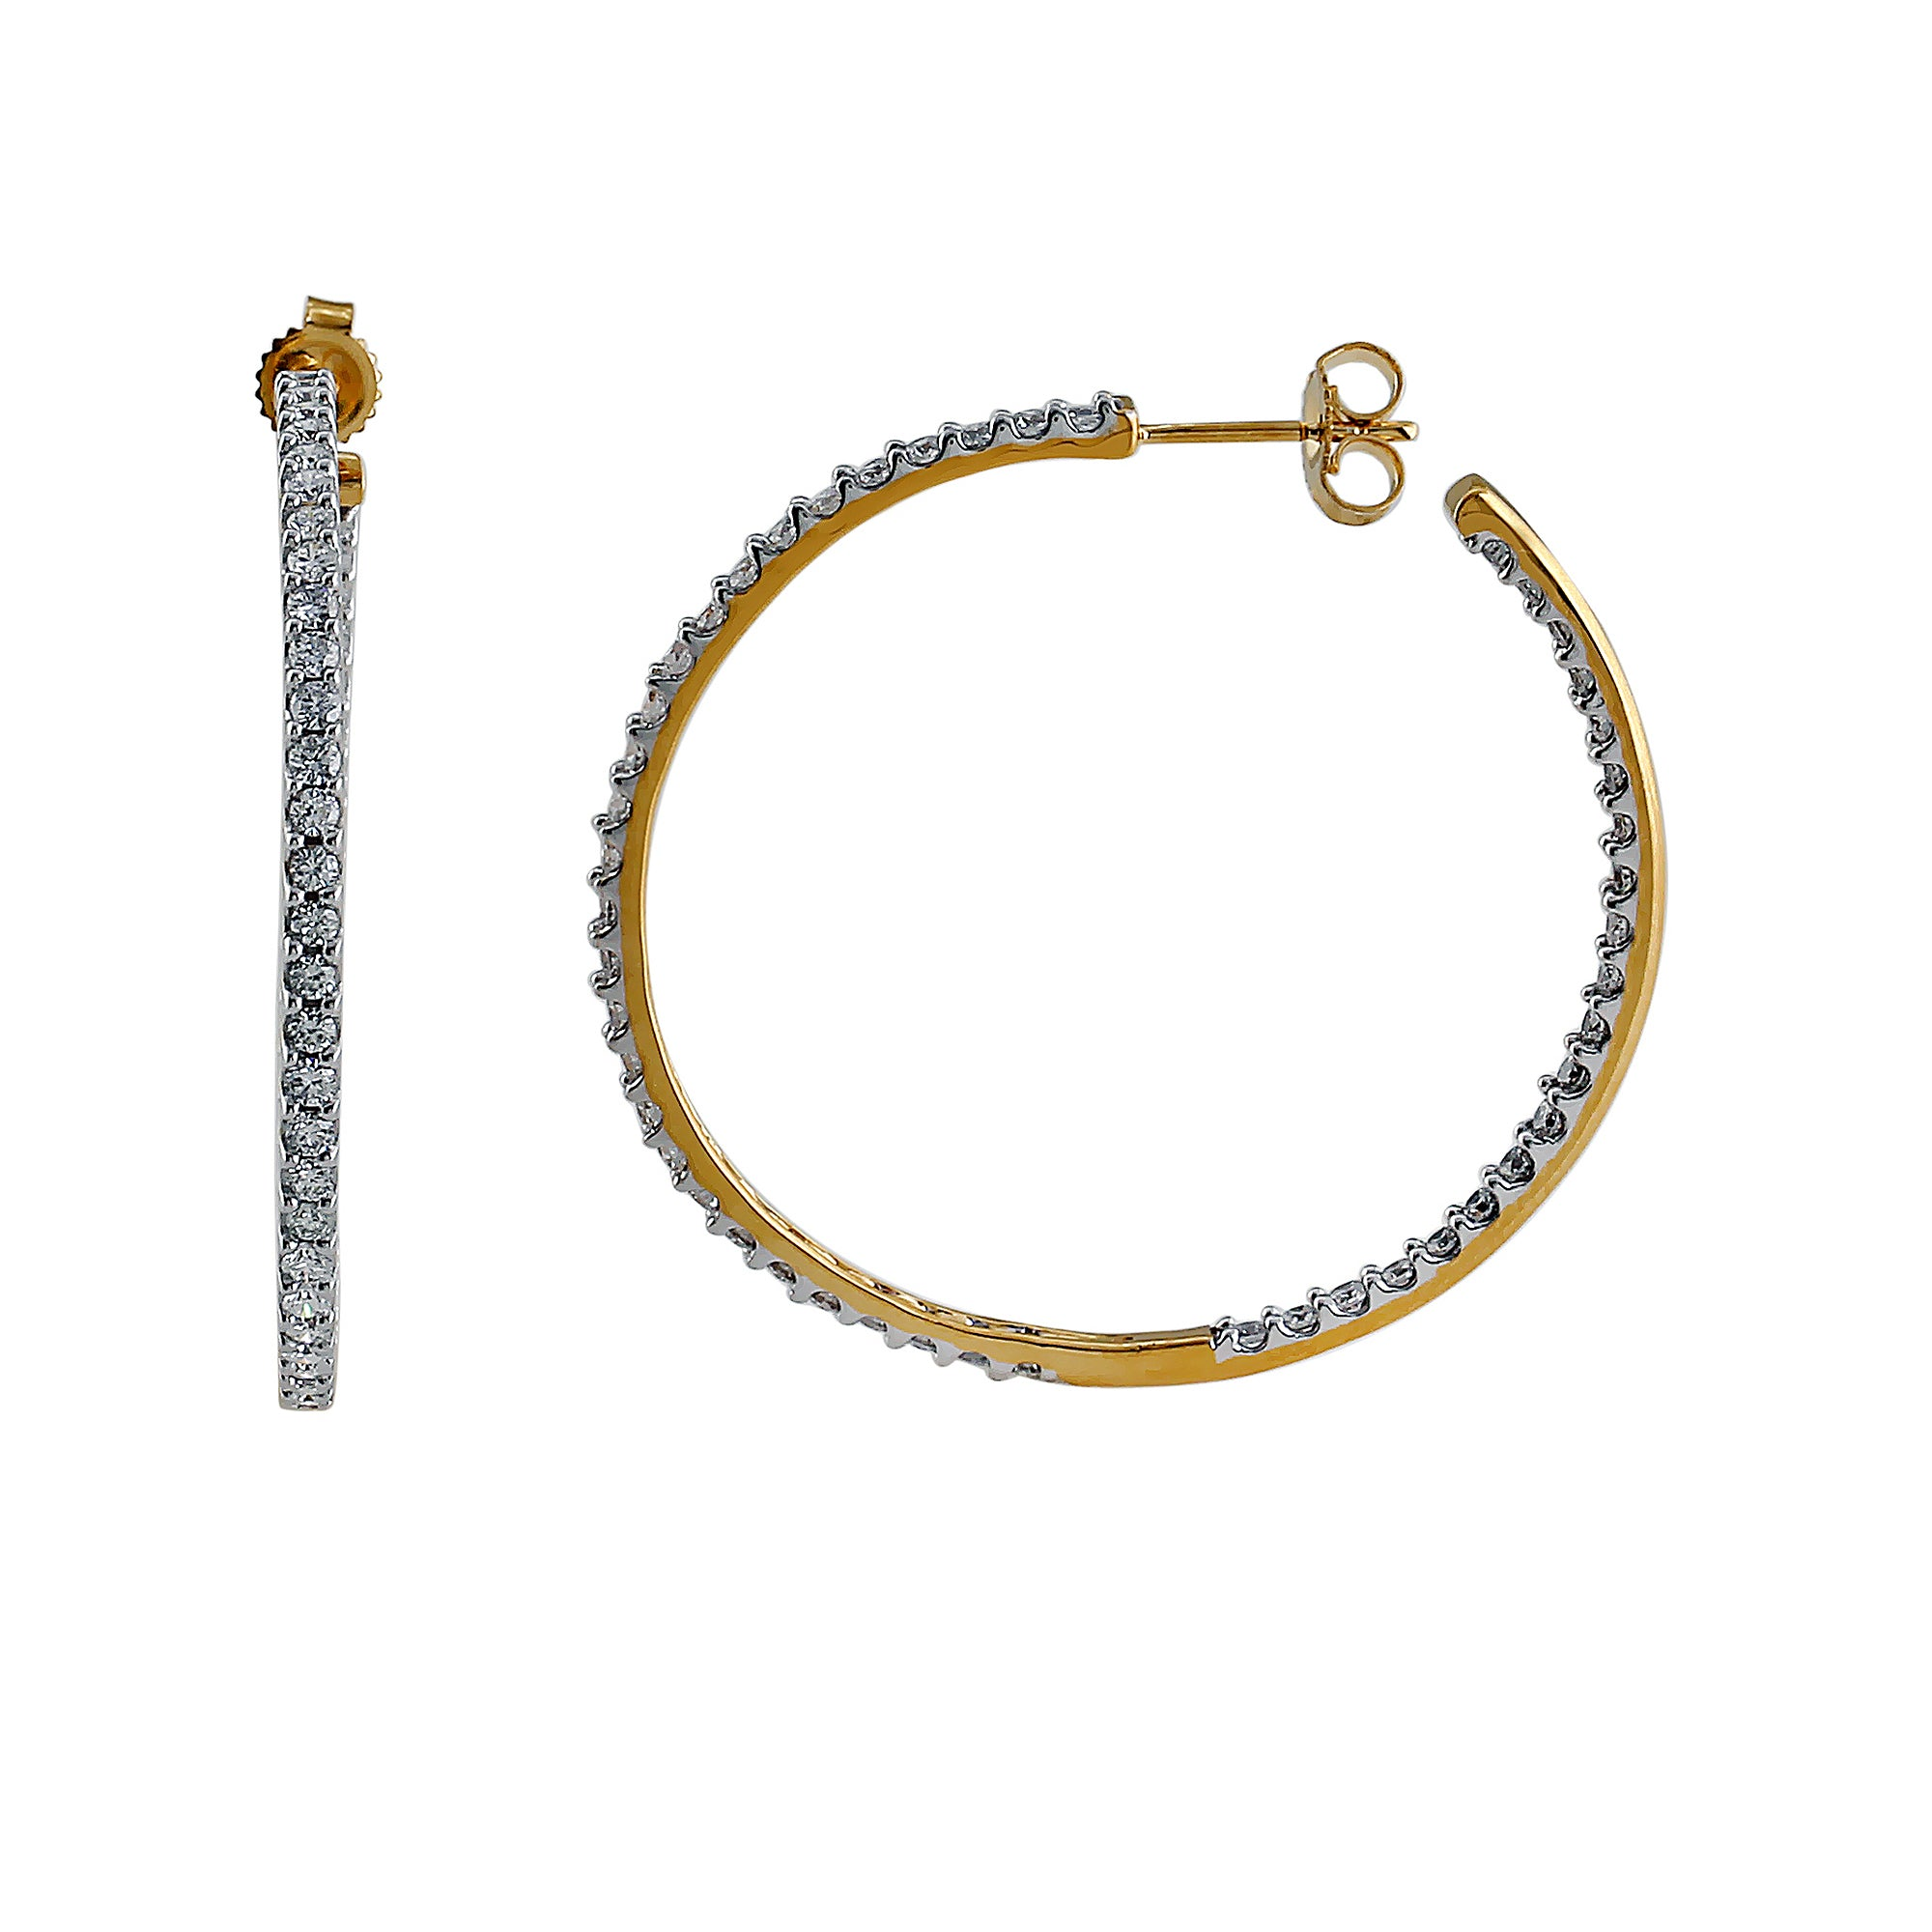 Halo Lab-Grown Diamond Hoop Earrings - 14k Gold Over Sterling Silver (2.00 ct. tw.)